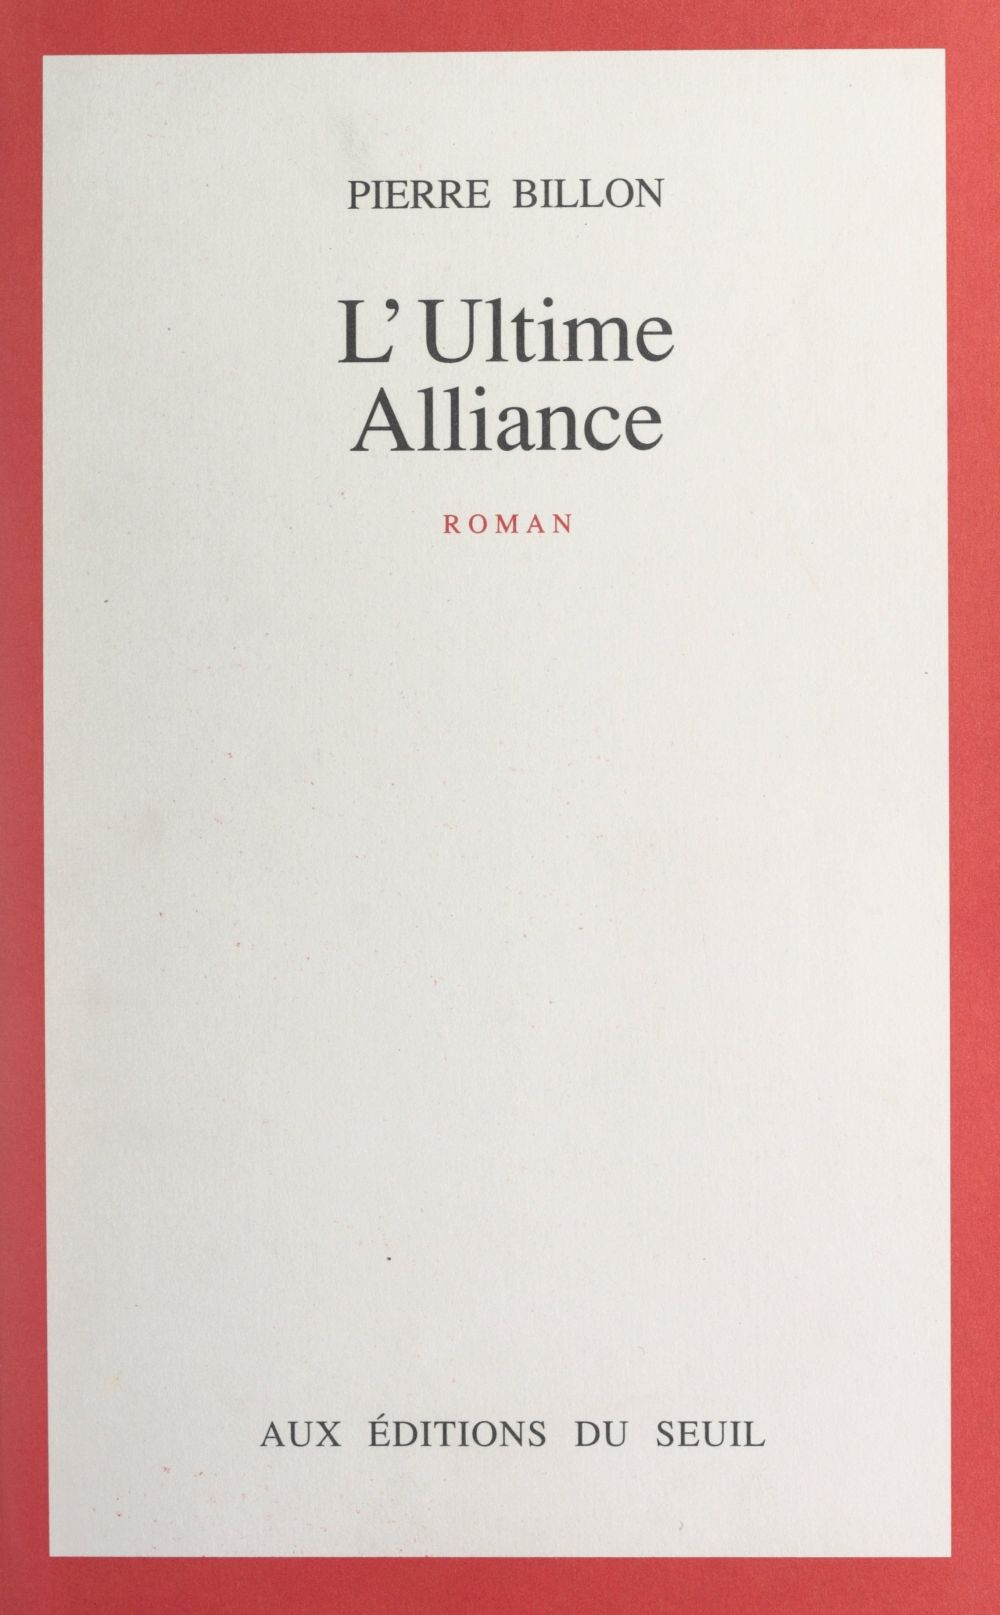 L'ultime alliance